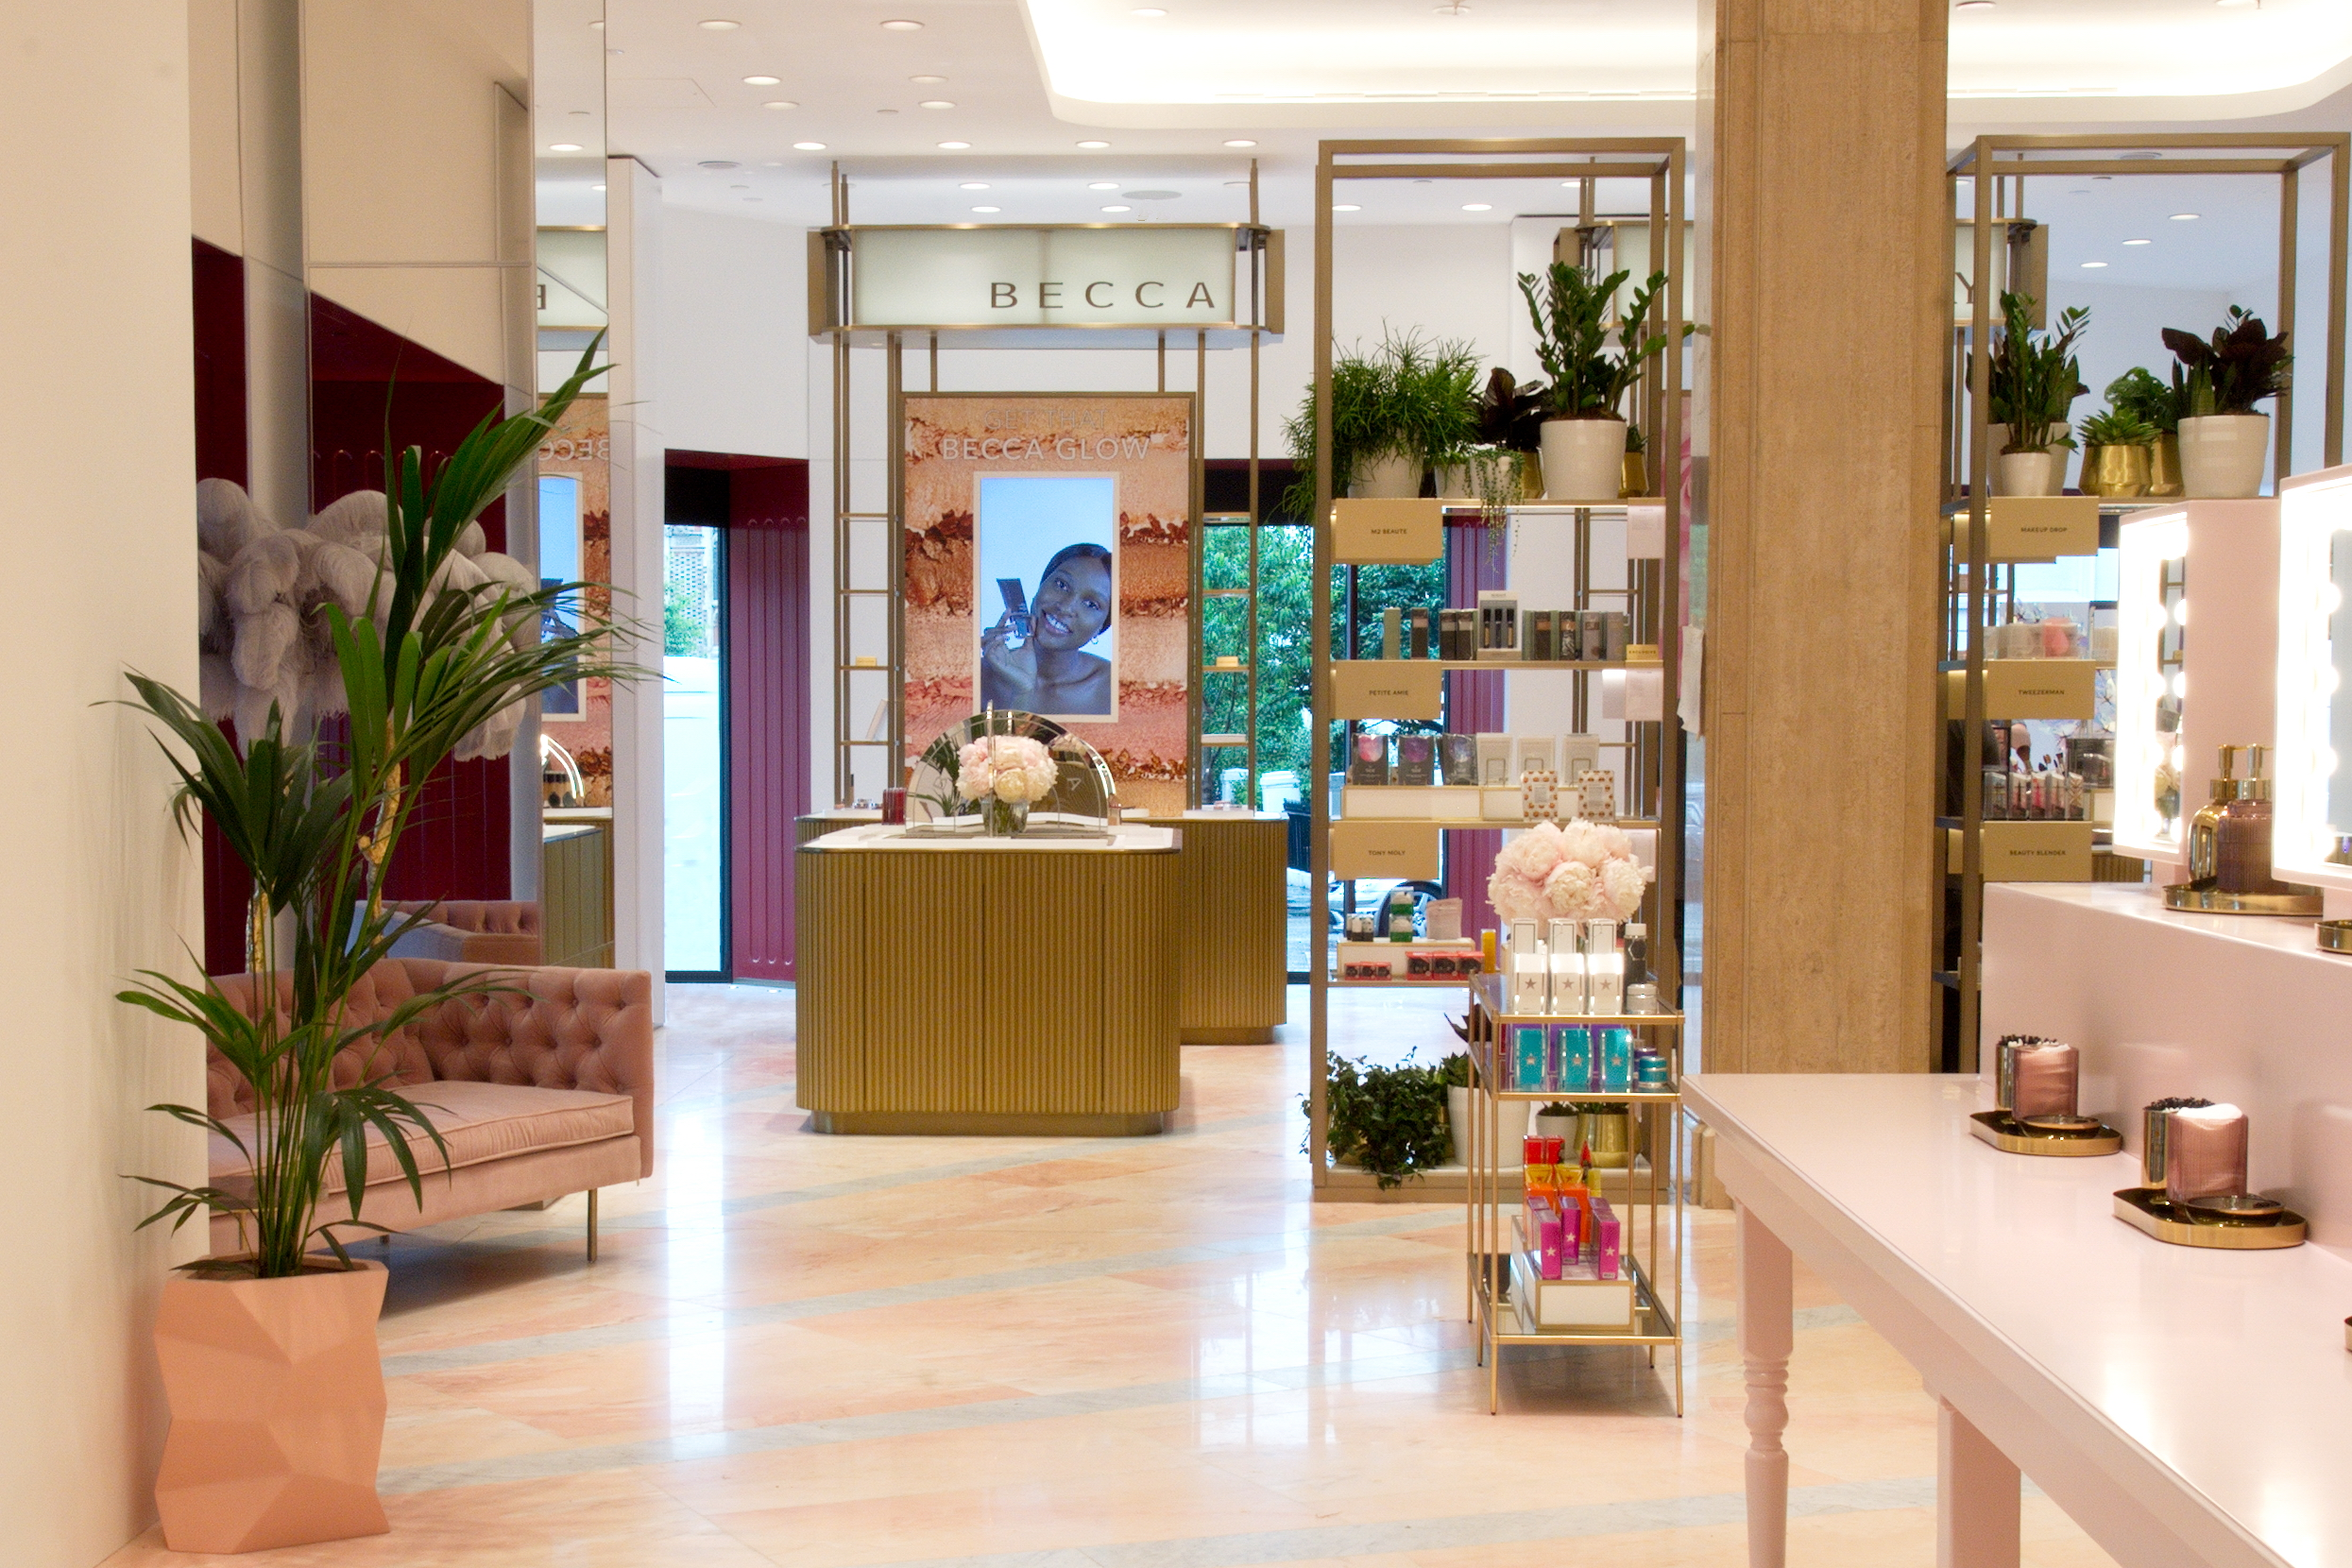 The Beauty Hall at Harrods